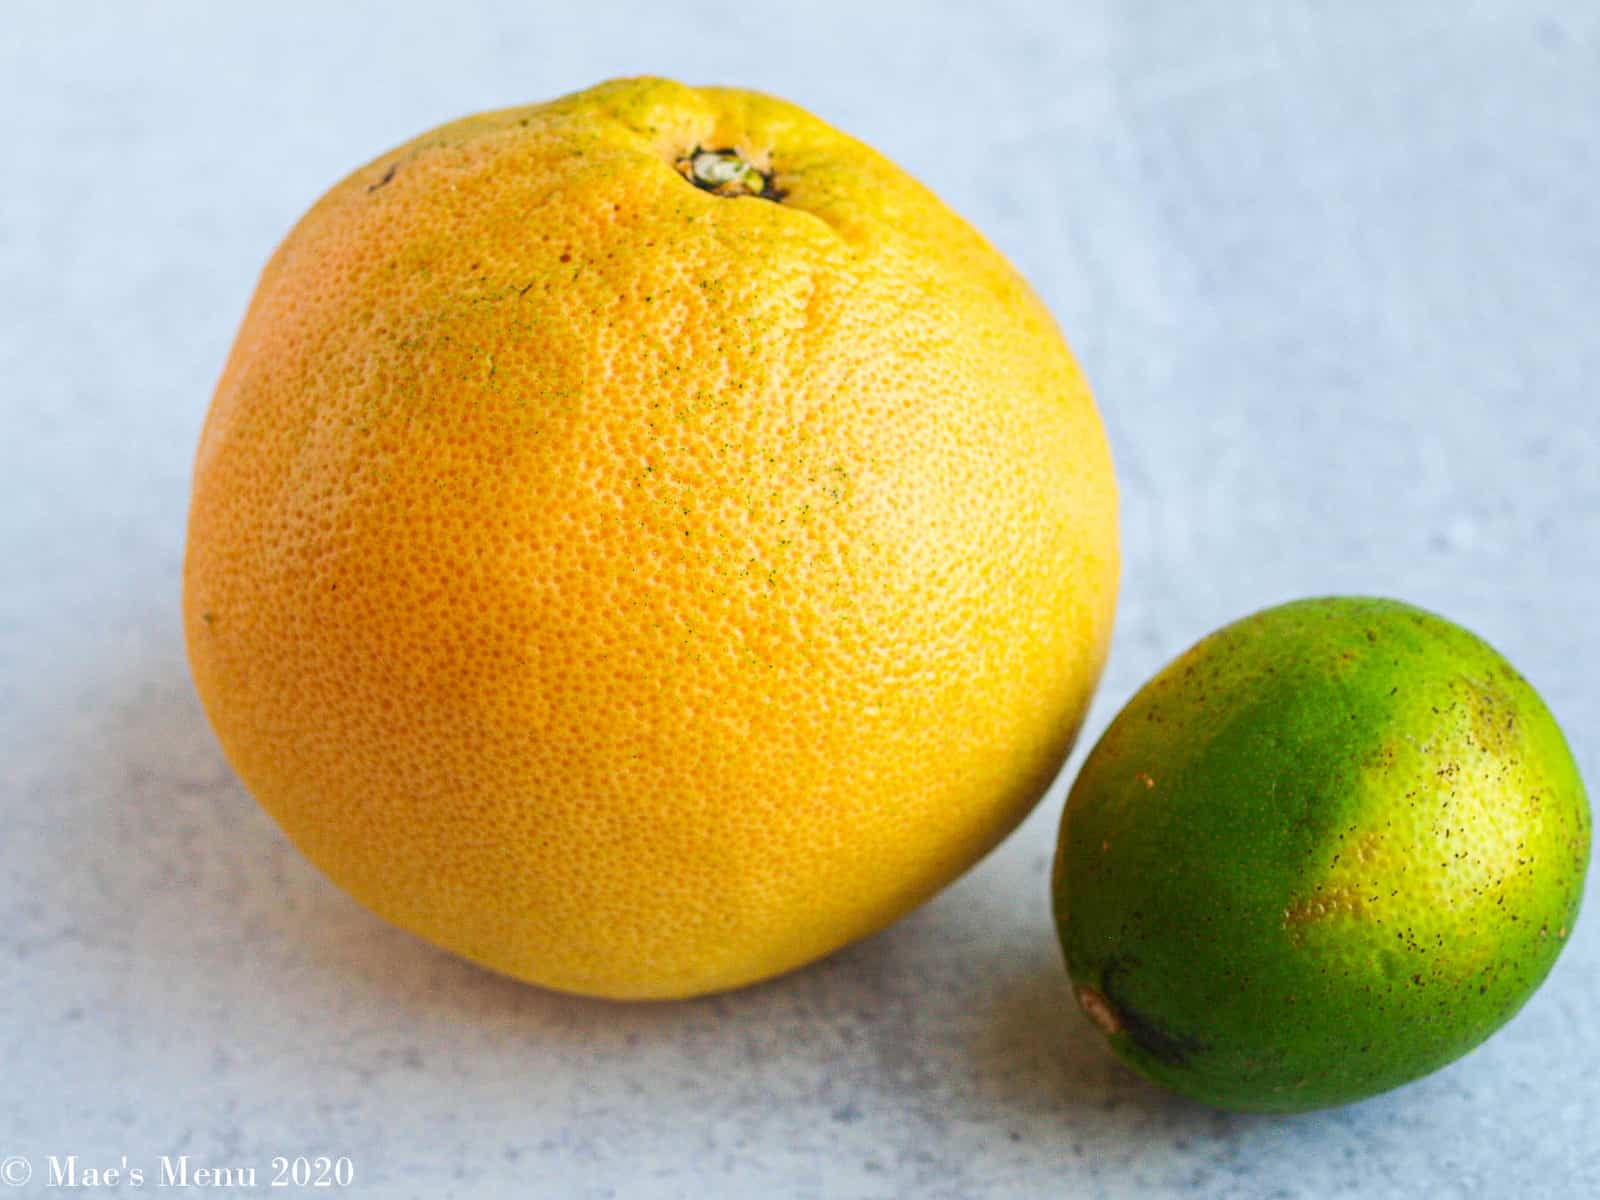 A large grapefruit and a lime sitting side-by-side